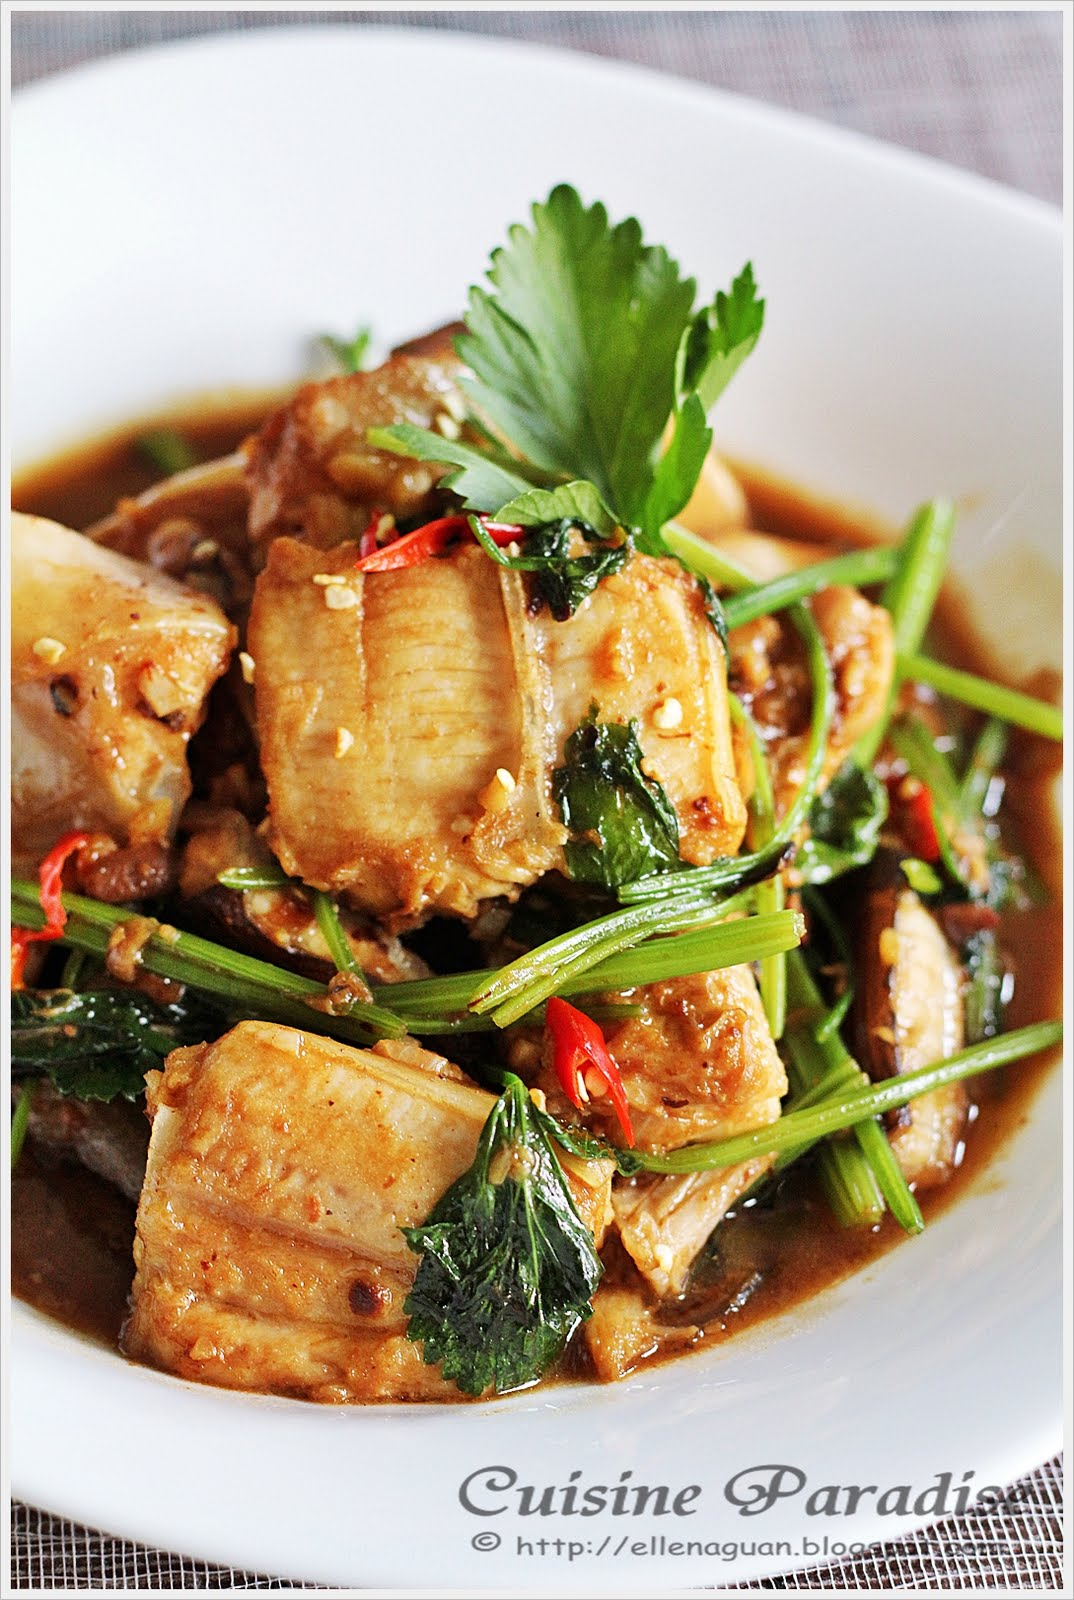 Cuisine paradise singapore food blog recipes reviews and travel stir fried stingray with fermented black bean and chinese celery forumfinder Choice Image